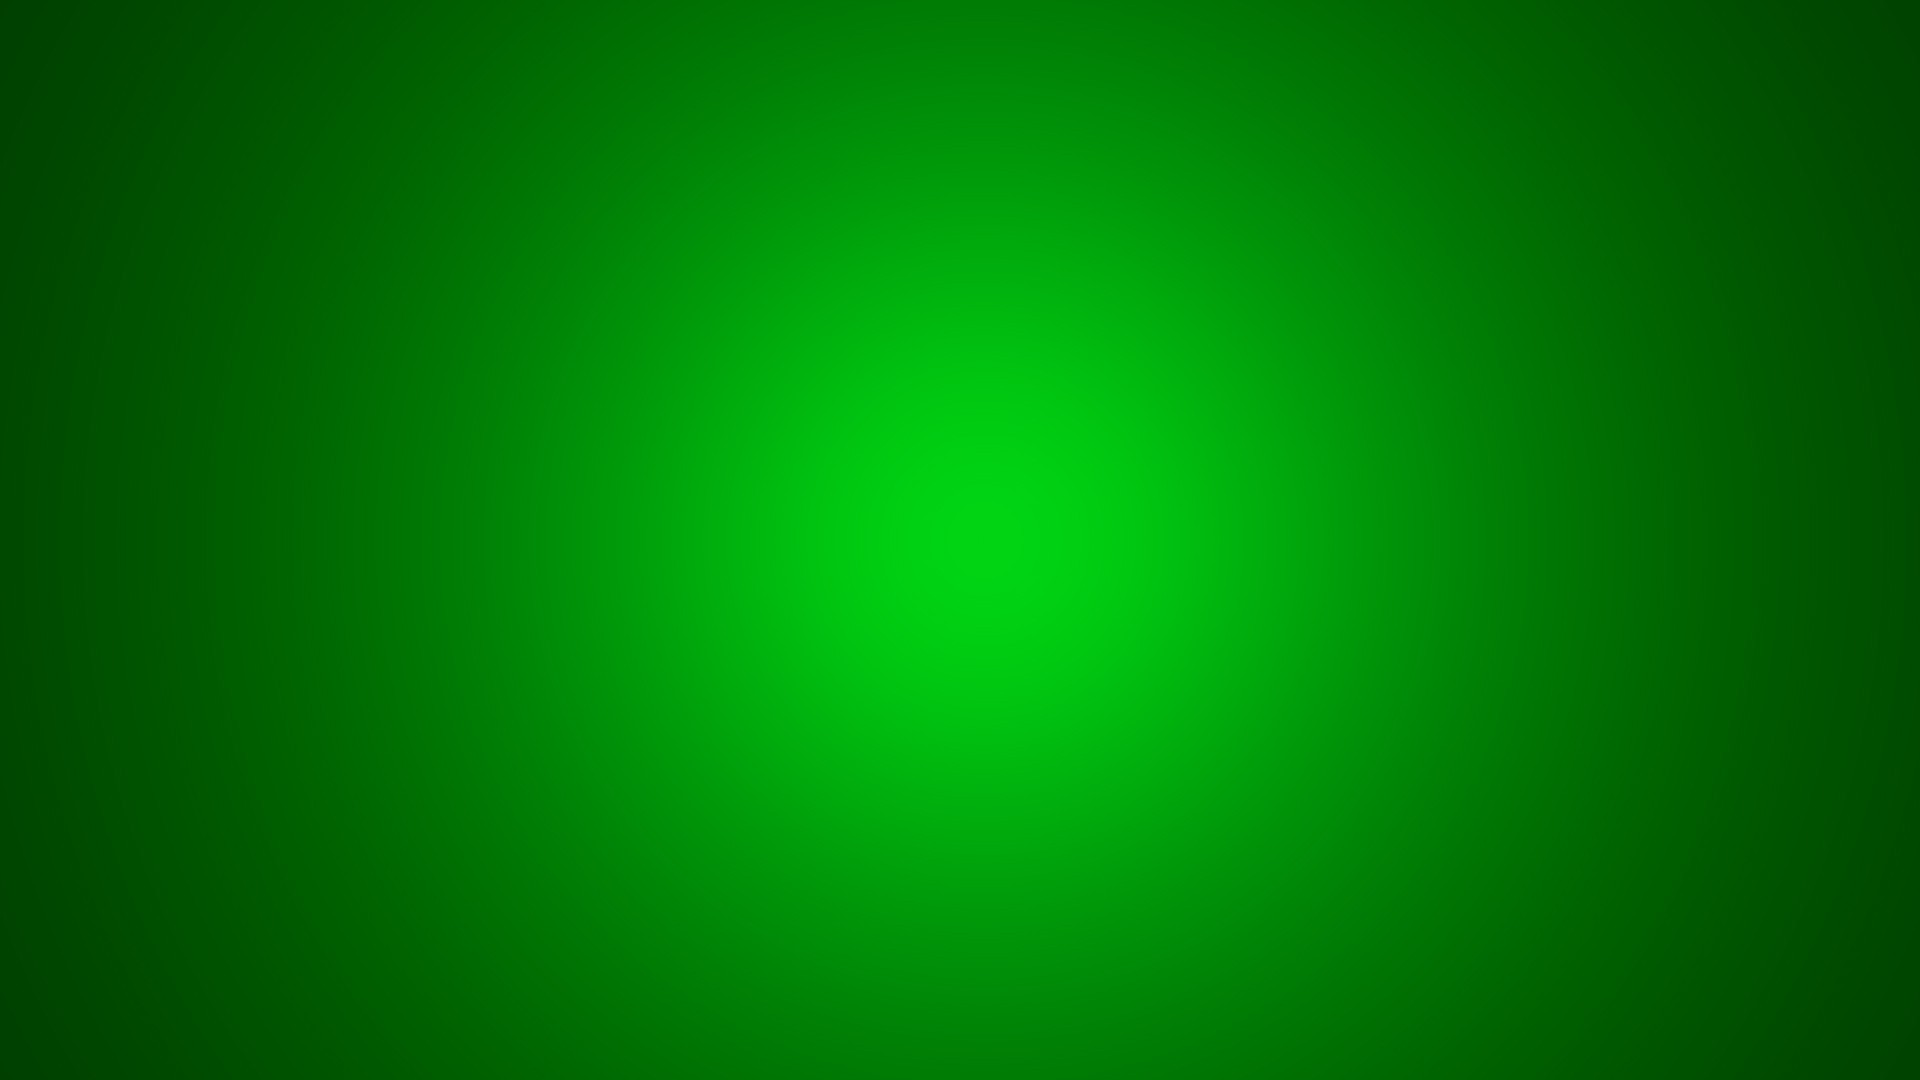 green background hd 3d - photo #31